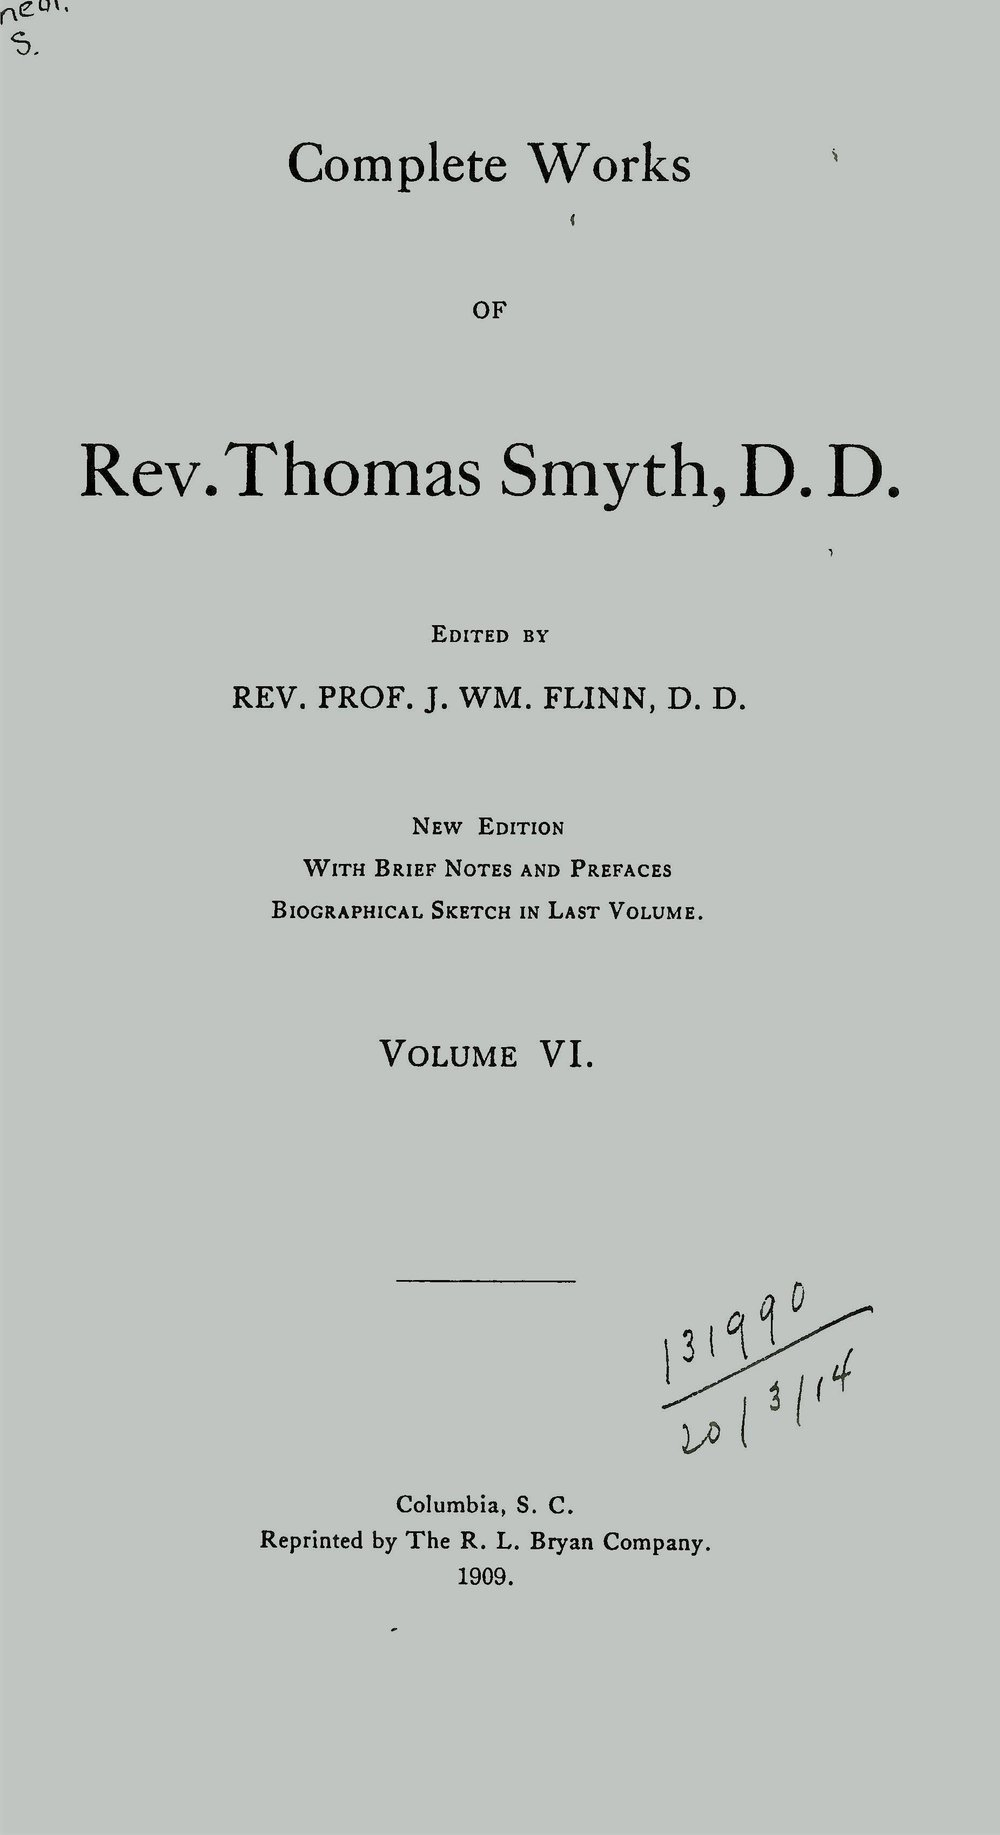 "1. The Primitive Revelation of a Divine and Incarnate Savior Traced in the History and Rites of Bacchus 2. National Righteousness 3. Union to Christ and to His Church; or, The Duty and Privilege of All to Believe in Christ, and to Become Communing Members of the Church of Christ 4. The Divine Appointment and Obligation of Capital Punishment with its Bearing on the Recent Execution of Colored Persons, and their Religious Instruction 5. Mary not a Perpetual Virgin, nor the Mother of God: But Only a Sinner Saved by Grace, Through the Worship and Mediation of Jesus Christ, Her God and our God. Together with a View of the True Position, Duty and Liberty of Woman under the Gospel Dispensation. 6.  An Address on Giving the Right Hand of Fellowship, Delivered at the Installation of Rev. Thomas Osborne Rice as Pastor of the Independent Congregational (Circular) Church, Charleston, S. C., April 1, 1860 7. Services on the Occasion of the Ordination of the Rev. F. P. Mullally, and the Installation of Rev. J. H. Thornwell, D.D., and Rev. F. P. Mullally, as Co-Pastors of the First Presbyterian Church, Columbia, S. C., Sermon by Rev. John L. Girardeau, Charges, by Rev. Thomas Smyth, D.D., May 4th, 1860 8. Preach the Word 9. Preaching Through the Press the Duty of All, A Discourse 10. Gospel Preaching Must Be Doctrinal Preaching, A Discourse 11. Fear as a Christian Motive, Two Discourses 12. Consciousness and Fright of Sin, A Discourse 13. Every Man Under Obligation to Believe and Confess Christ by Union to His Church and an Open Confession of His Ordinances and [2nd item] The Duty and Privilege of Belief and Confession Urged Upon Doubting Sinners 14. The Young Man Miserable and the Young Man Happy, Four Discourses 15. Bible Temperance, Five Articles 16. A Defense of the Ecclesiastical Boards of the Presbyterian Church 17. The World-Reaching Sound and World-Preaching Sound, A Sermon 18. Our Election Made Sure 19. The Peculiar Song and Service of the Redeemed, A Sermon 20. The Question of Psalmody, A Series of Articles 21. The Scriptural and Divine Right for Using Mechanical as Well as Vocal Instruments in the Worship of God, A Discourse 22. The Sunday School Teacher in His Work, Spirit and Motives, A Series of Five Articles 23. Assurance—Witness of the Spirit and The Call to the Ministry 24. Claims of the Christian Ministry to an Adequate and Liberal Support; also a Plea for the Preaching of the Gospel to the Poor, but Not by the Poor, ""For the poor the gospel is preached."" Luke 7:22 25. The Art Unions and the Use of the Lot, An Article 26.  Education 27. The Waldenses—Were They Pedobaptists? 28. The Culdee Monasteries 29. Trees 30. On the Importance of a Knowledge of Natural History to a Full Understanding of the Sacred Scriptures, A Lecture Delivered Before the South Carolina Lyceum, Friday Evening, May 19, 1848 31. Lecture on the Practical Utility of Astronomical Science"